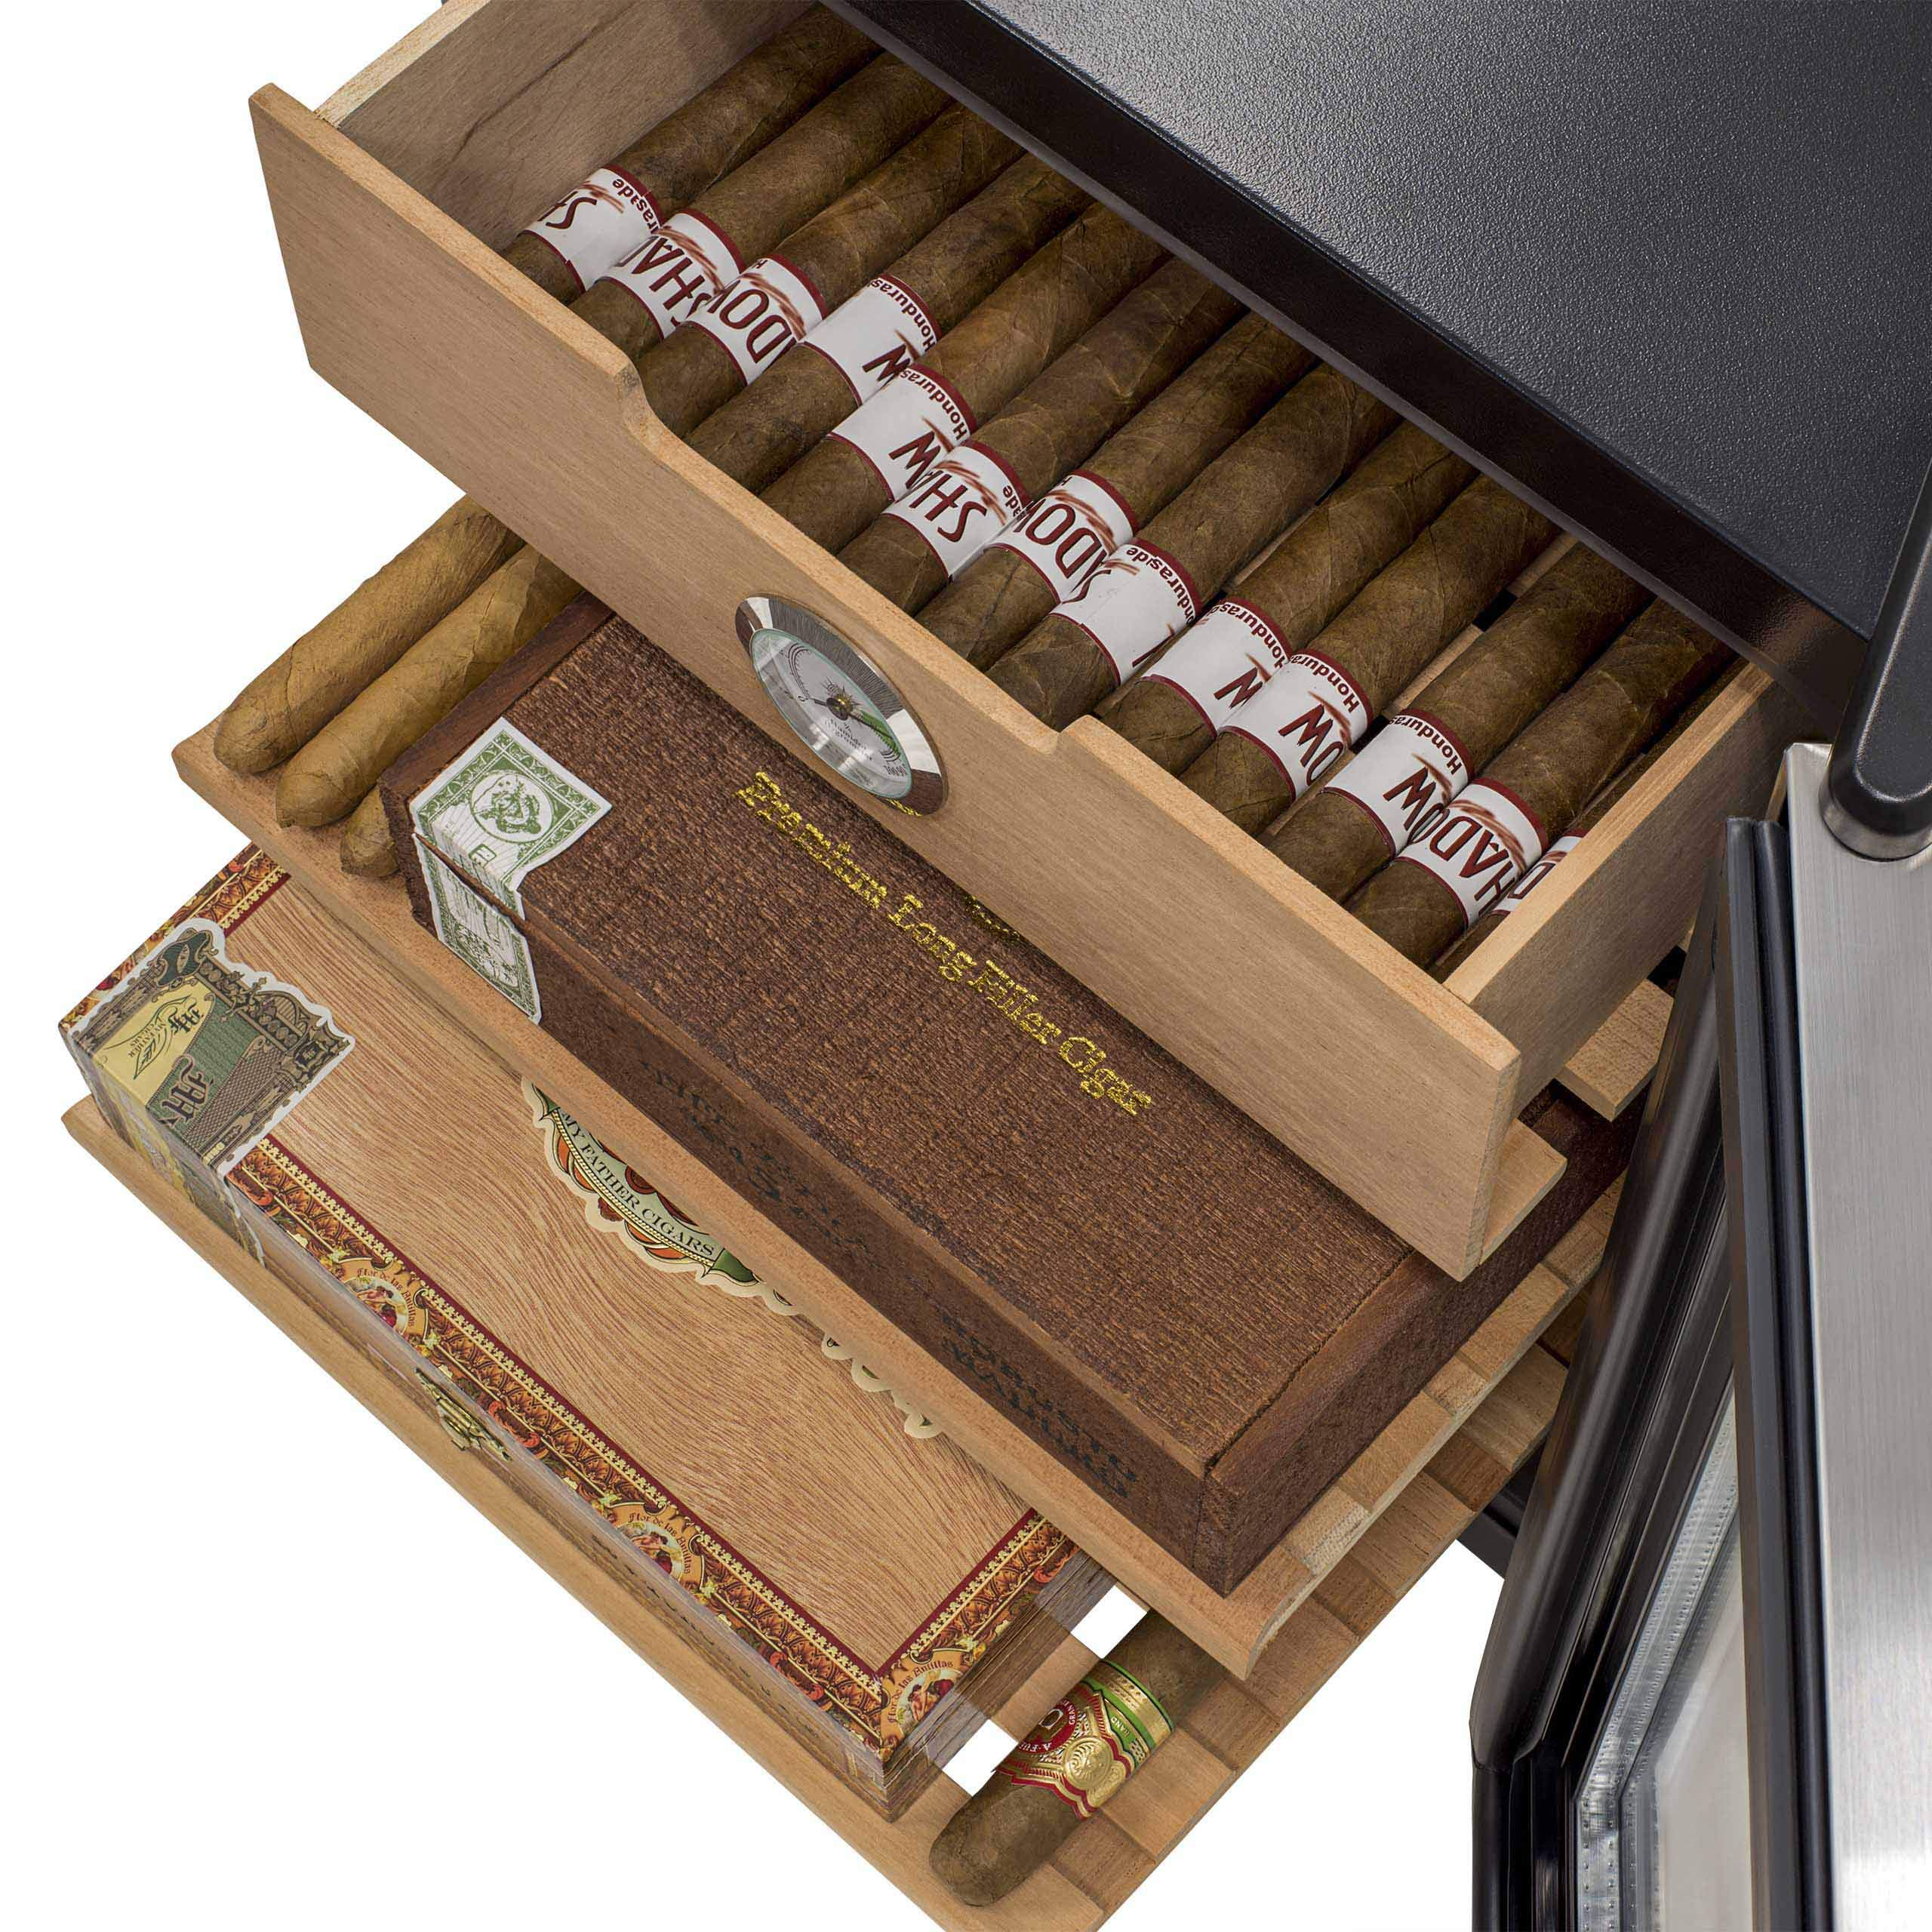 NewAir CC-100H Cigar Cooler and Humidor, 250 Count by NewAir (Image #4)